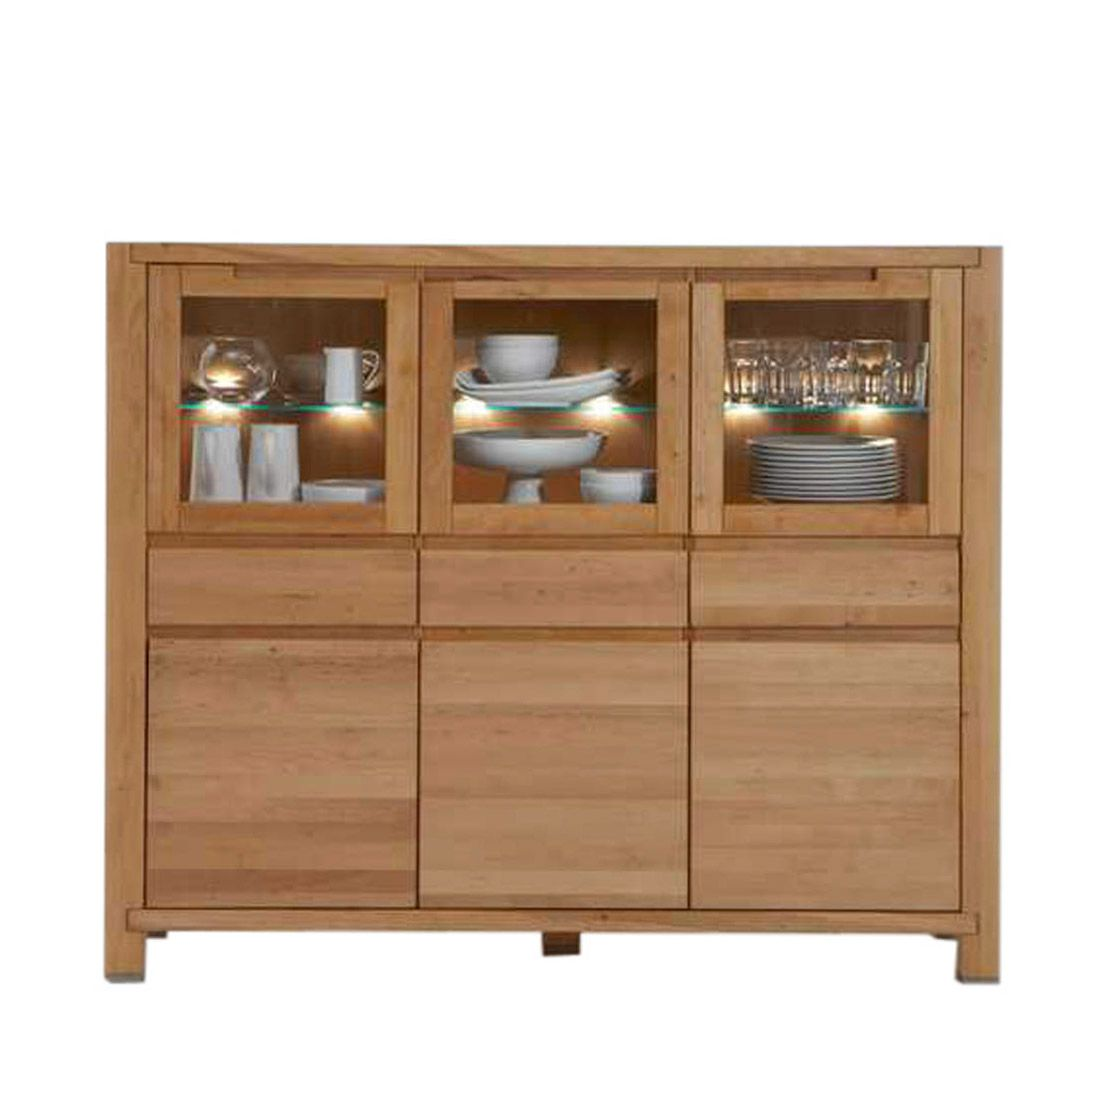 Highboard Boston (ohne Beleuchtung)